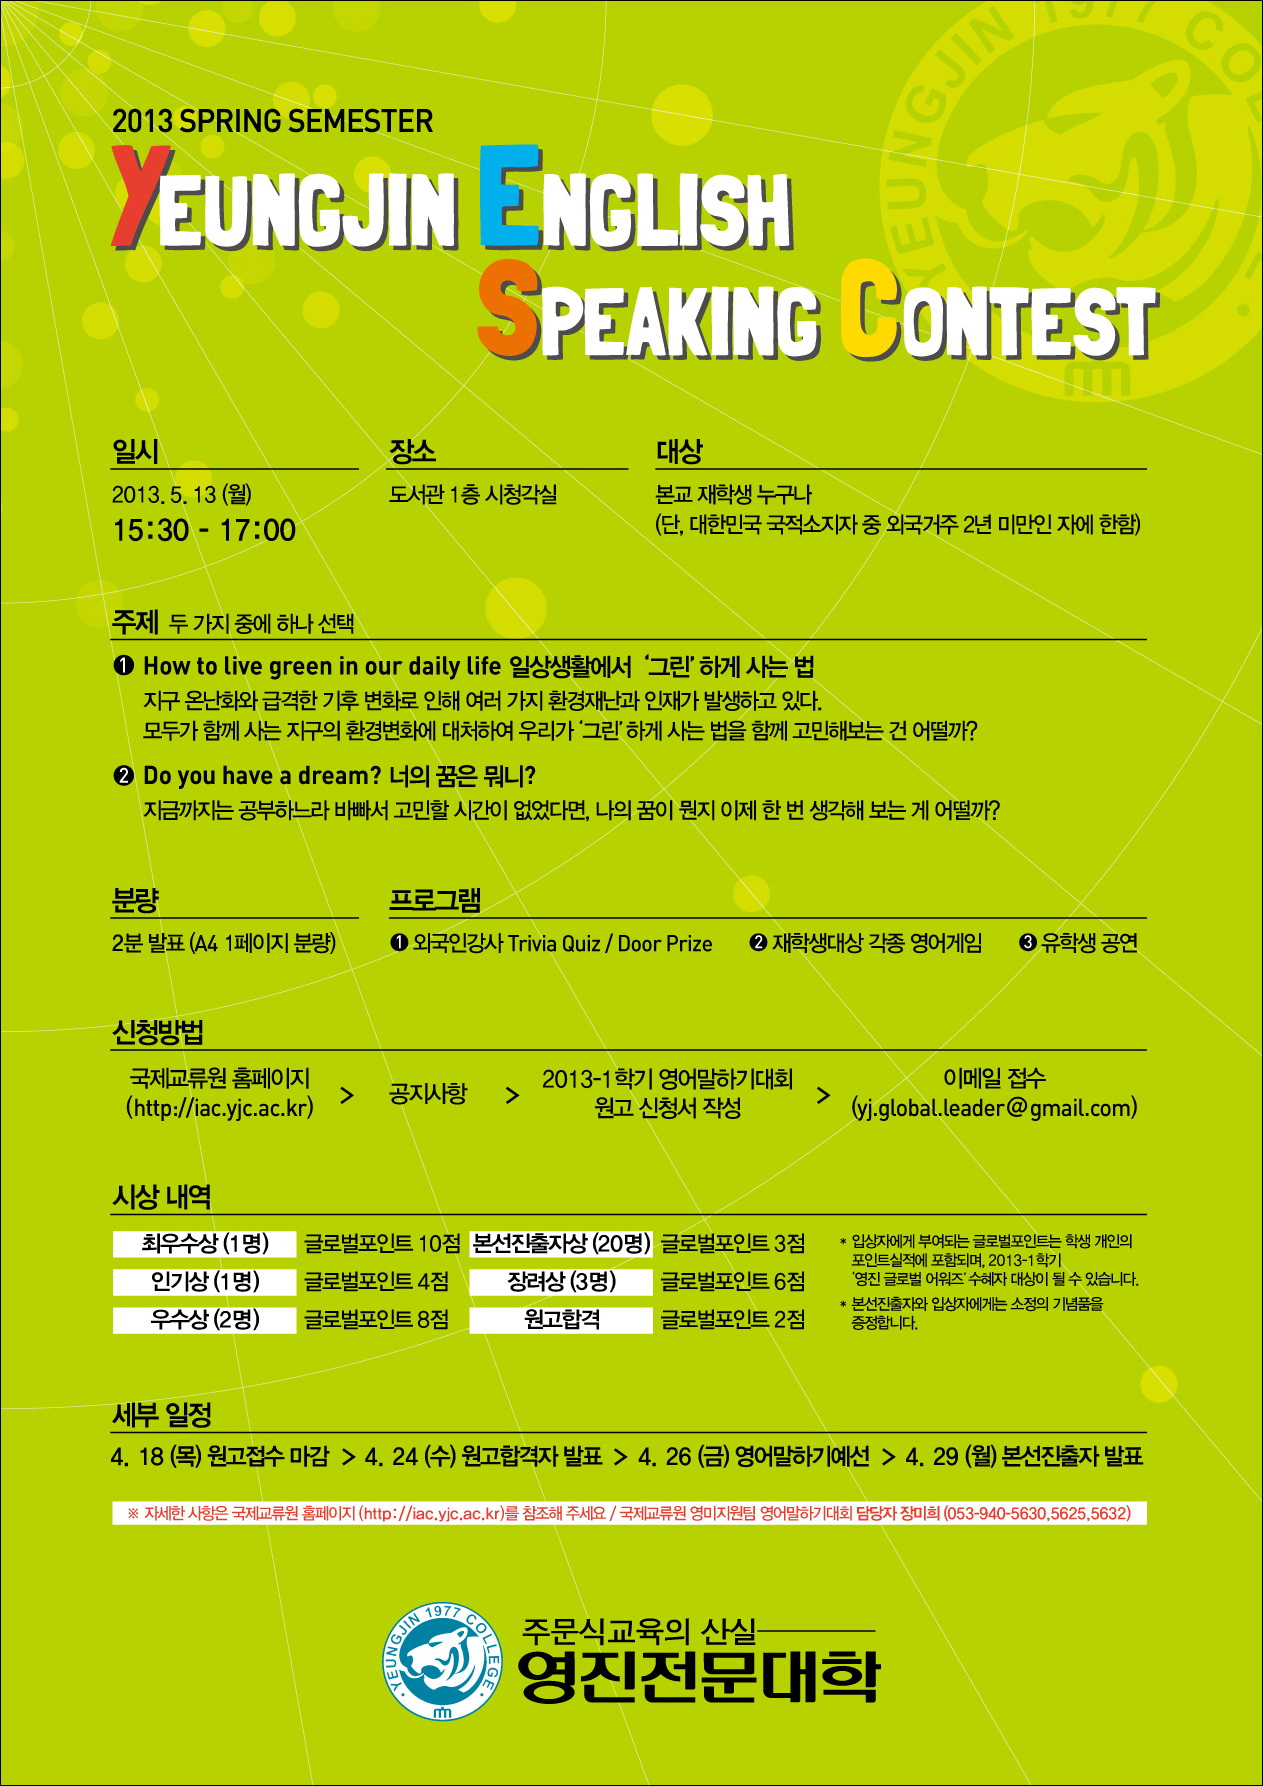 2013YeungjinEnglishSpeakingContest.jpg